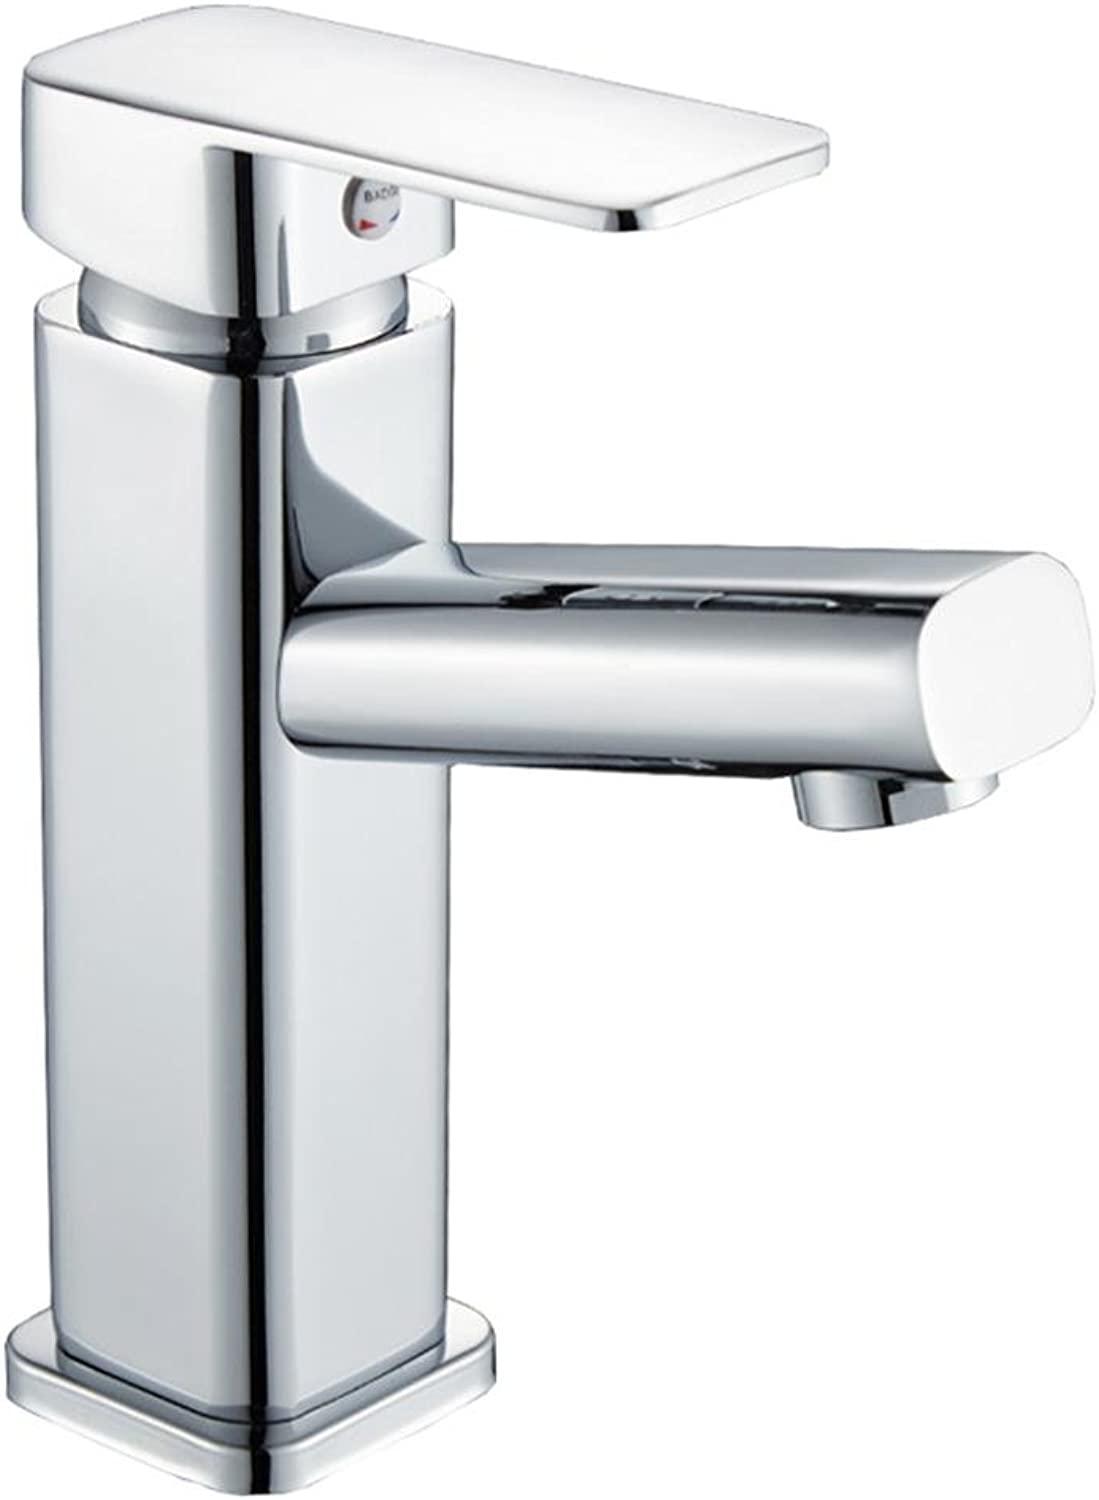 TOYM UK- All Copper Basin Hot And Cold Taps Bathroom Washbasin Single Hole Faucet